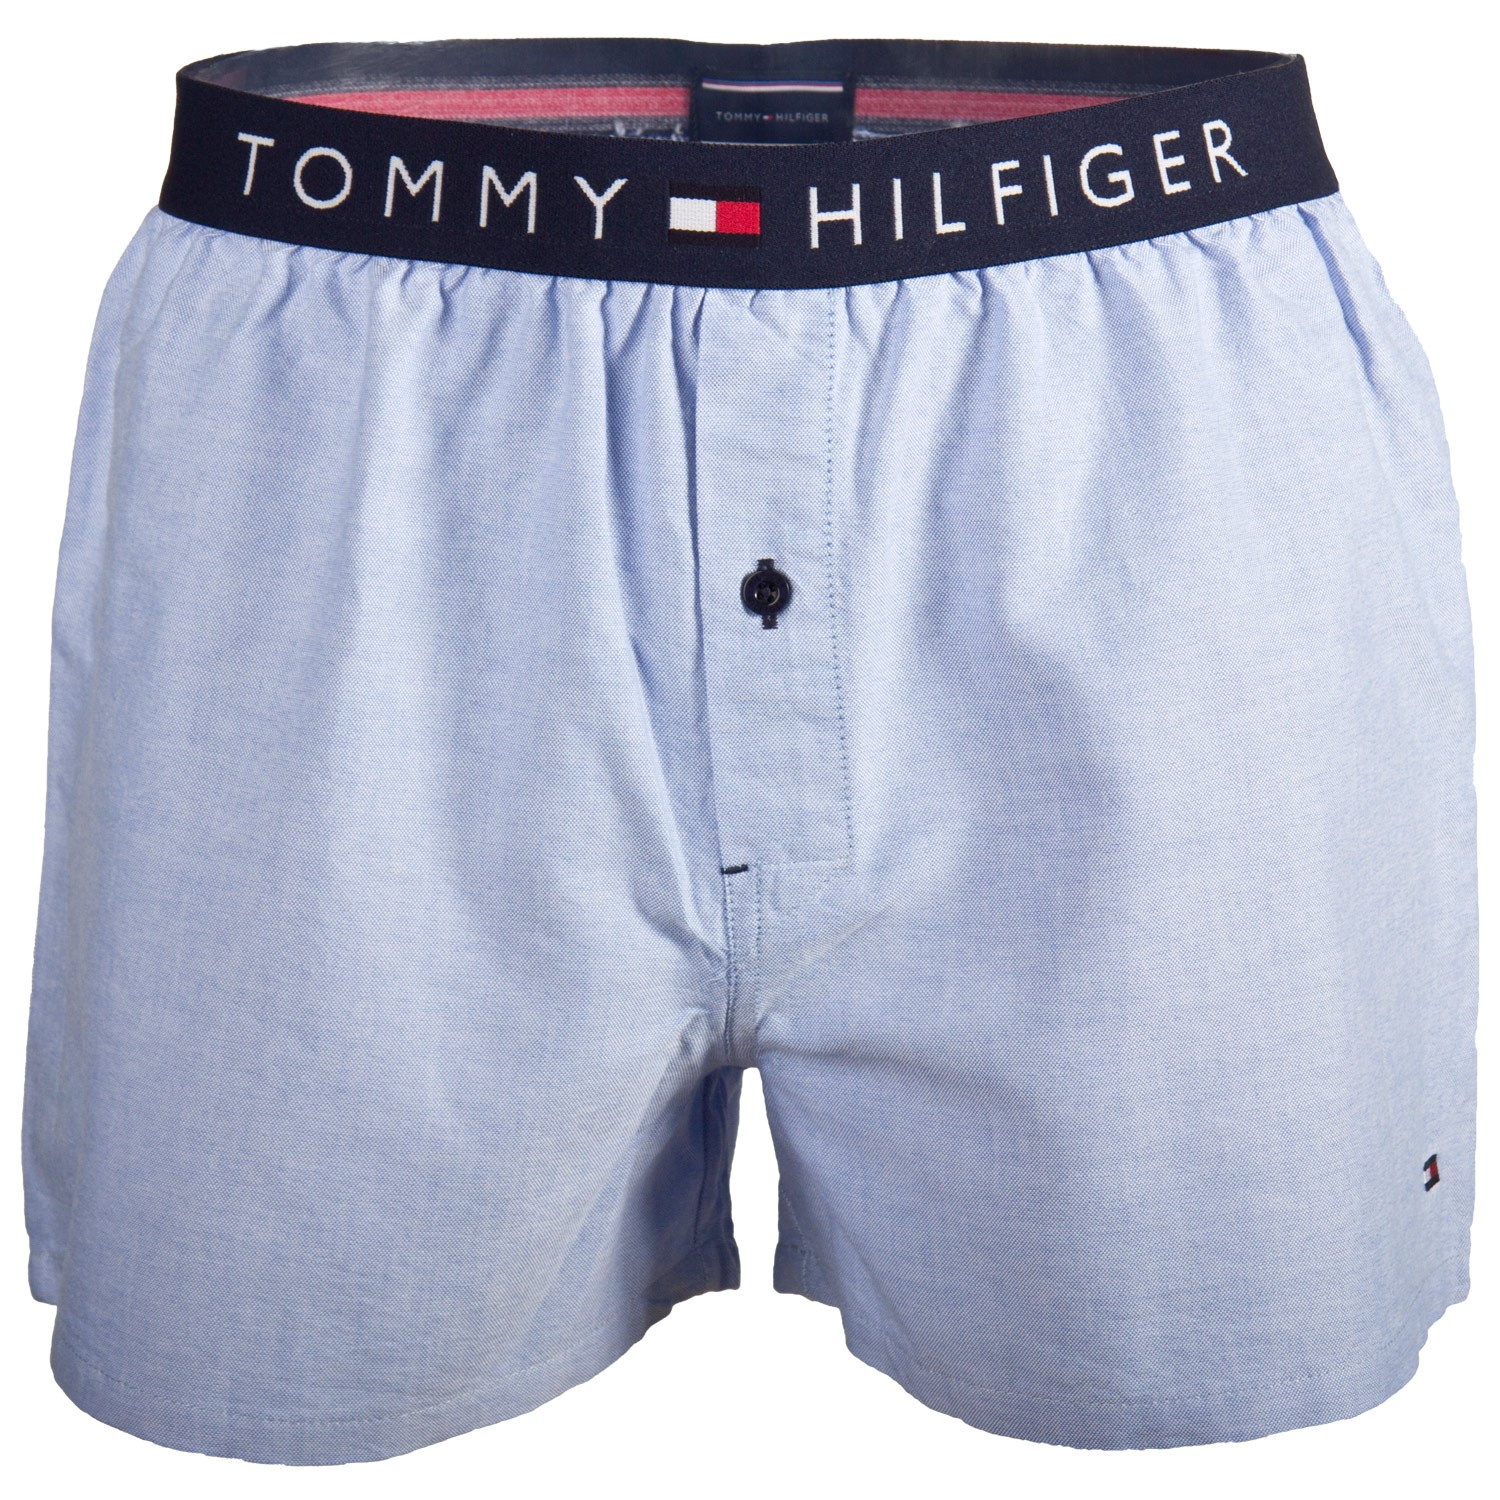 tommy hilfiger woven boxer lorenzo boxer shorts trunks. Black Bedroom Furniture Sets. Home Design Ideas